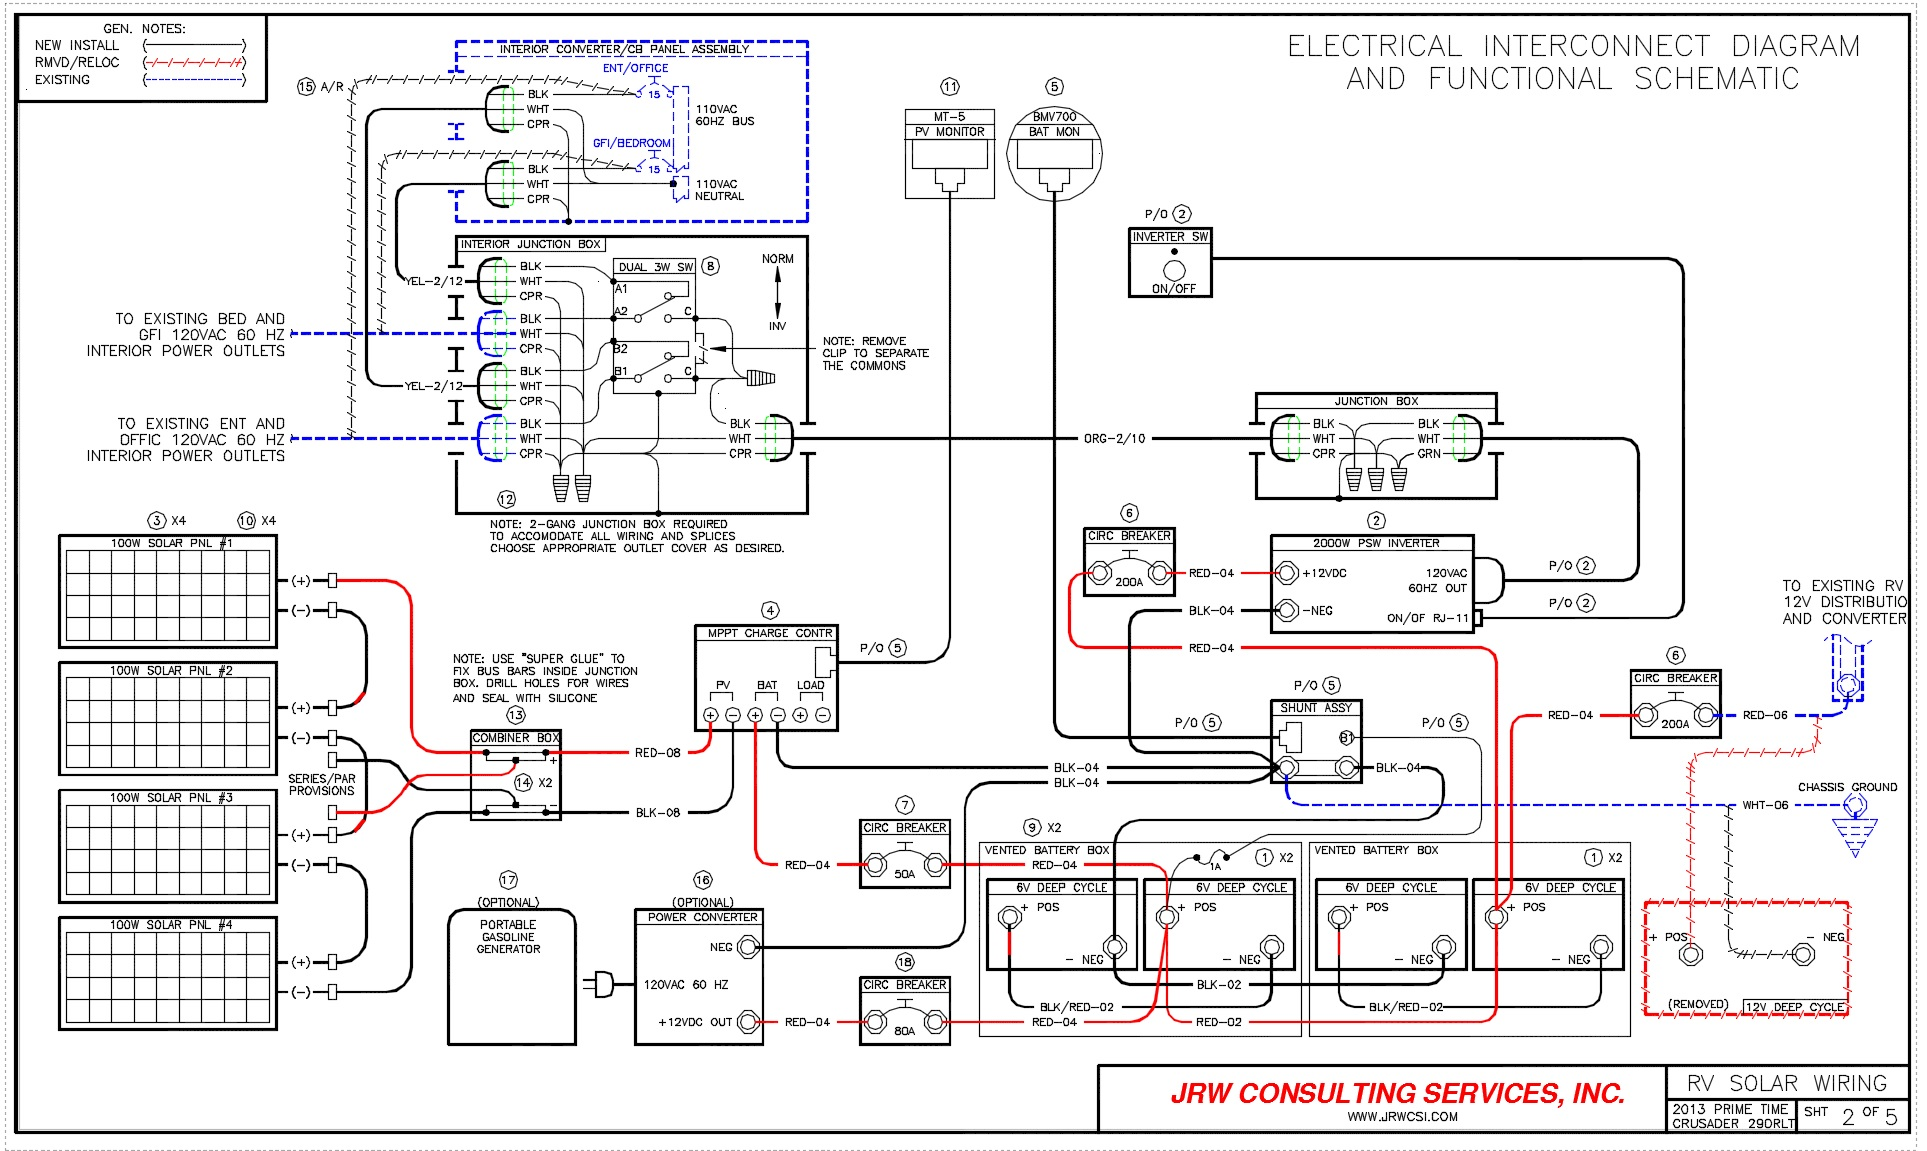 Solar Disconnect Wiring Diagram on welding diagram, rigging diagram, battery diagram, disconnect switch diagram, piping diagram, shields diagram, starter diagram, fuel line diagram,